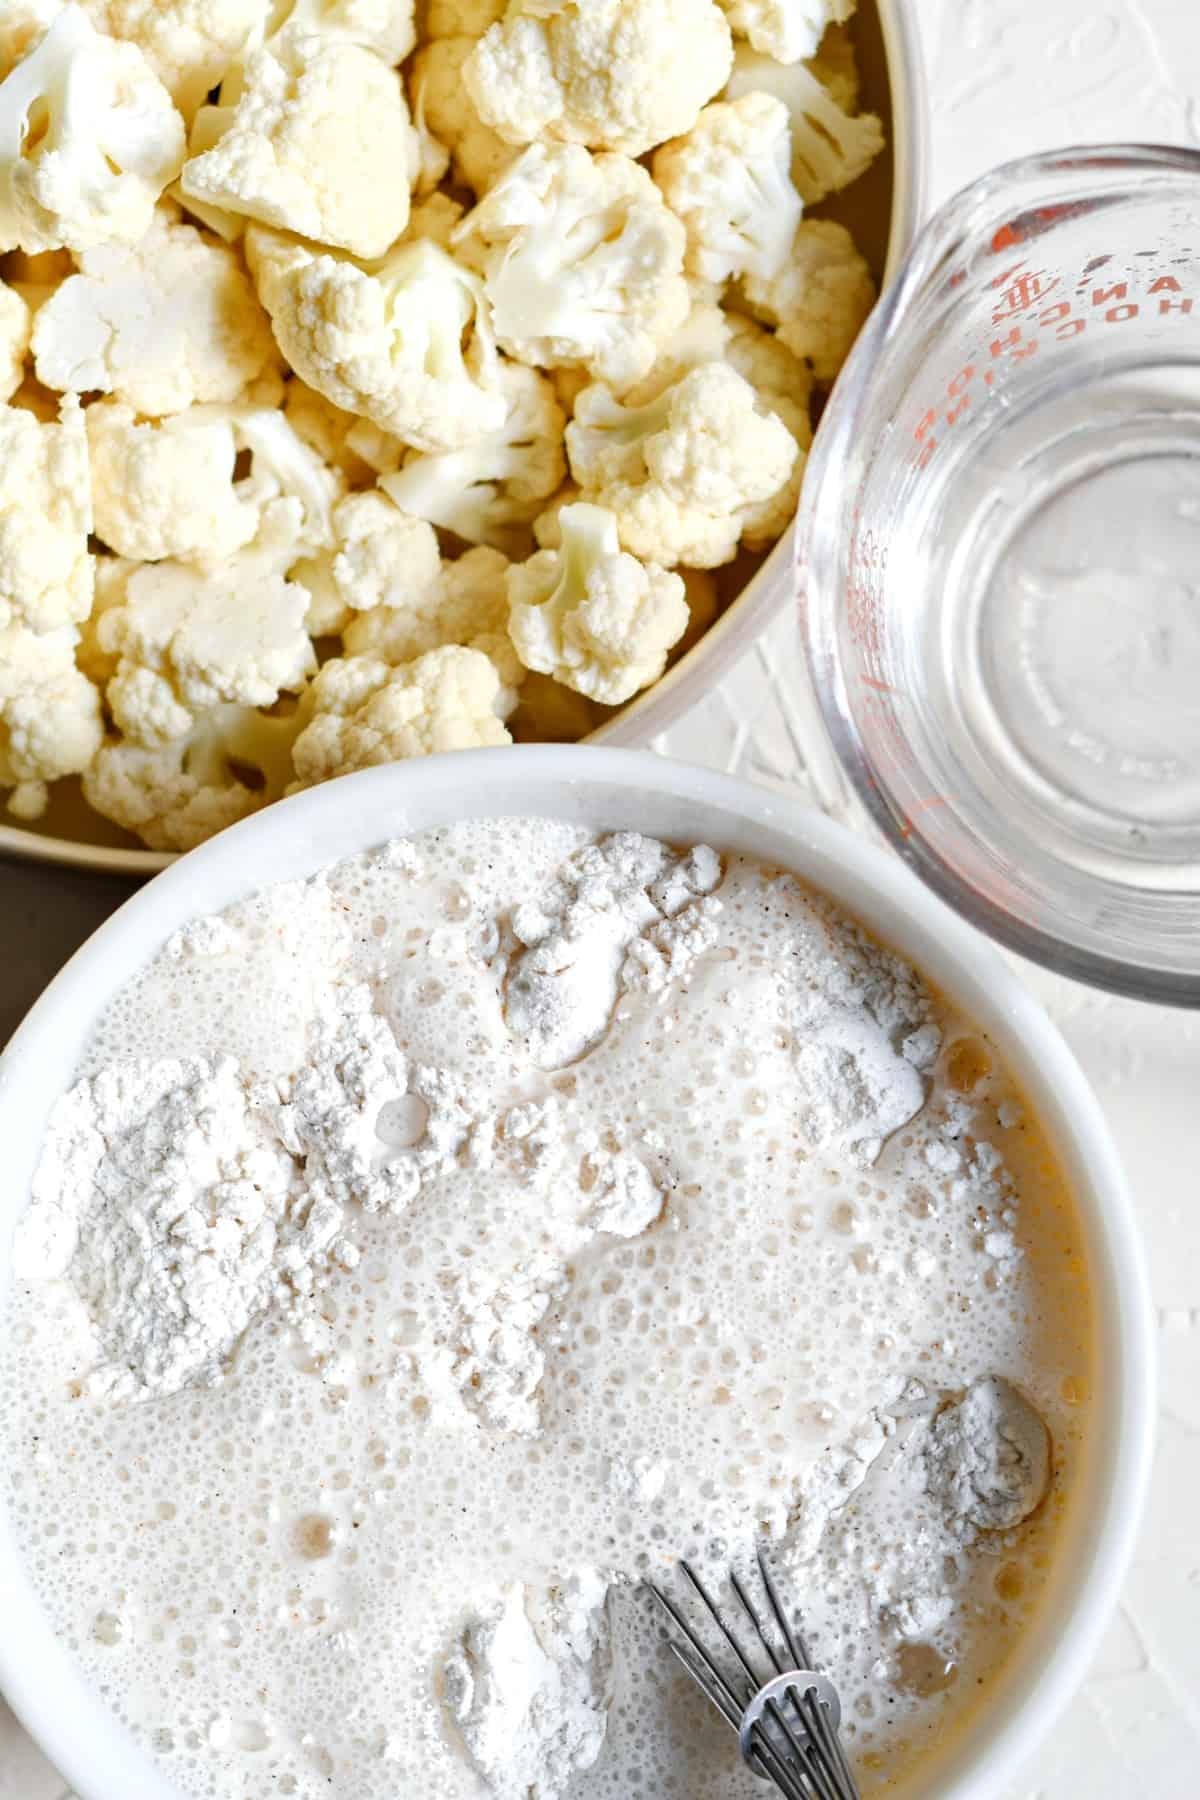 Seltzer water added to batter to make cauliflower wings.